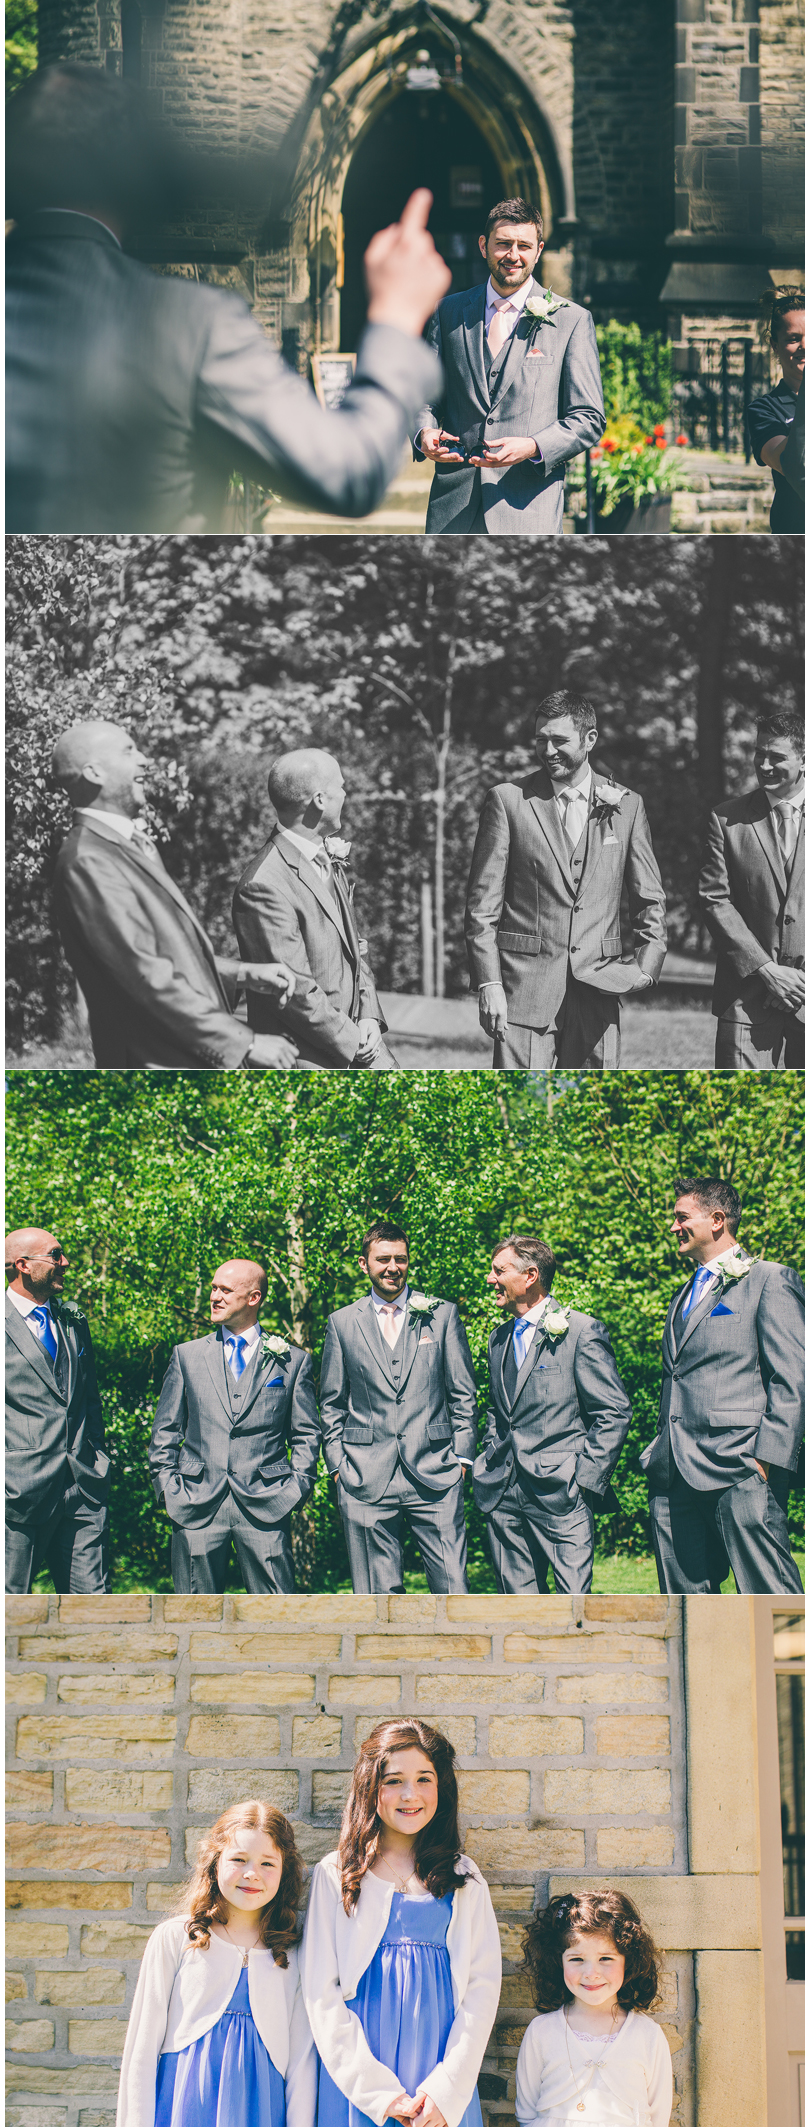 Neil_Jackson_Photographic_Scarborough_York_Yorkshire_Wedding_Photographer_Kate_Adam_Ripponden_West_Yorkshire_Wedding_Photography_Blog3